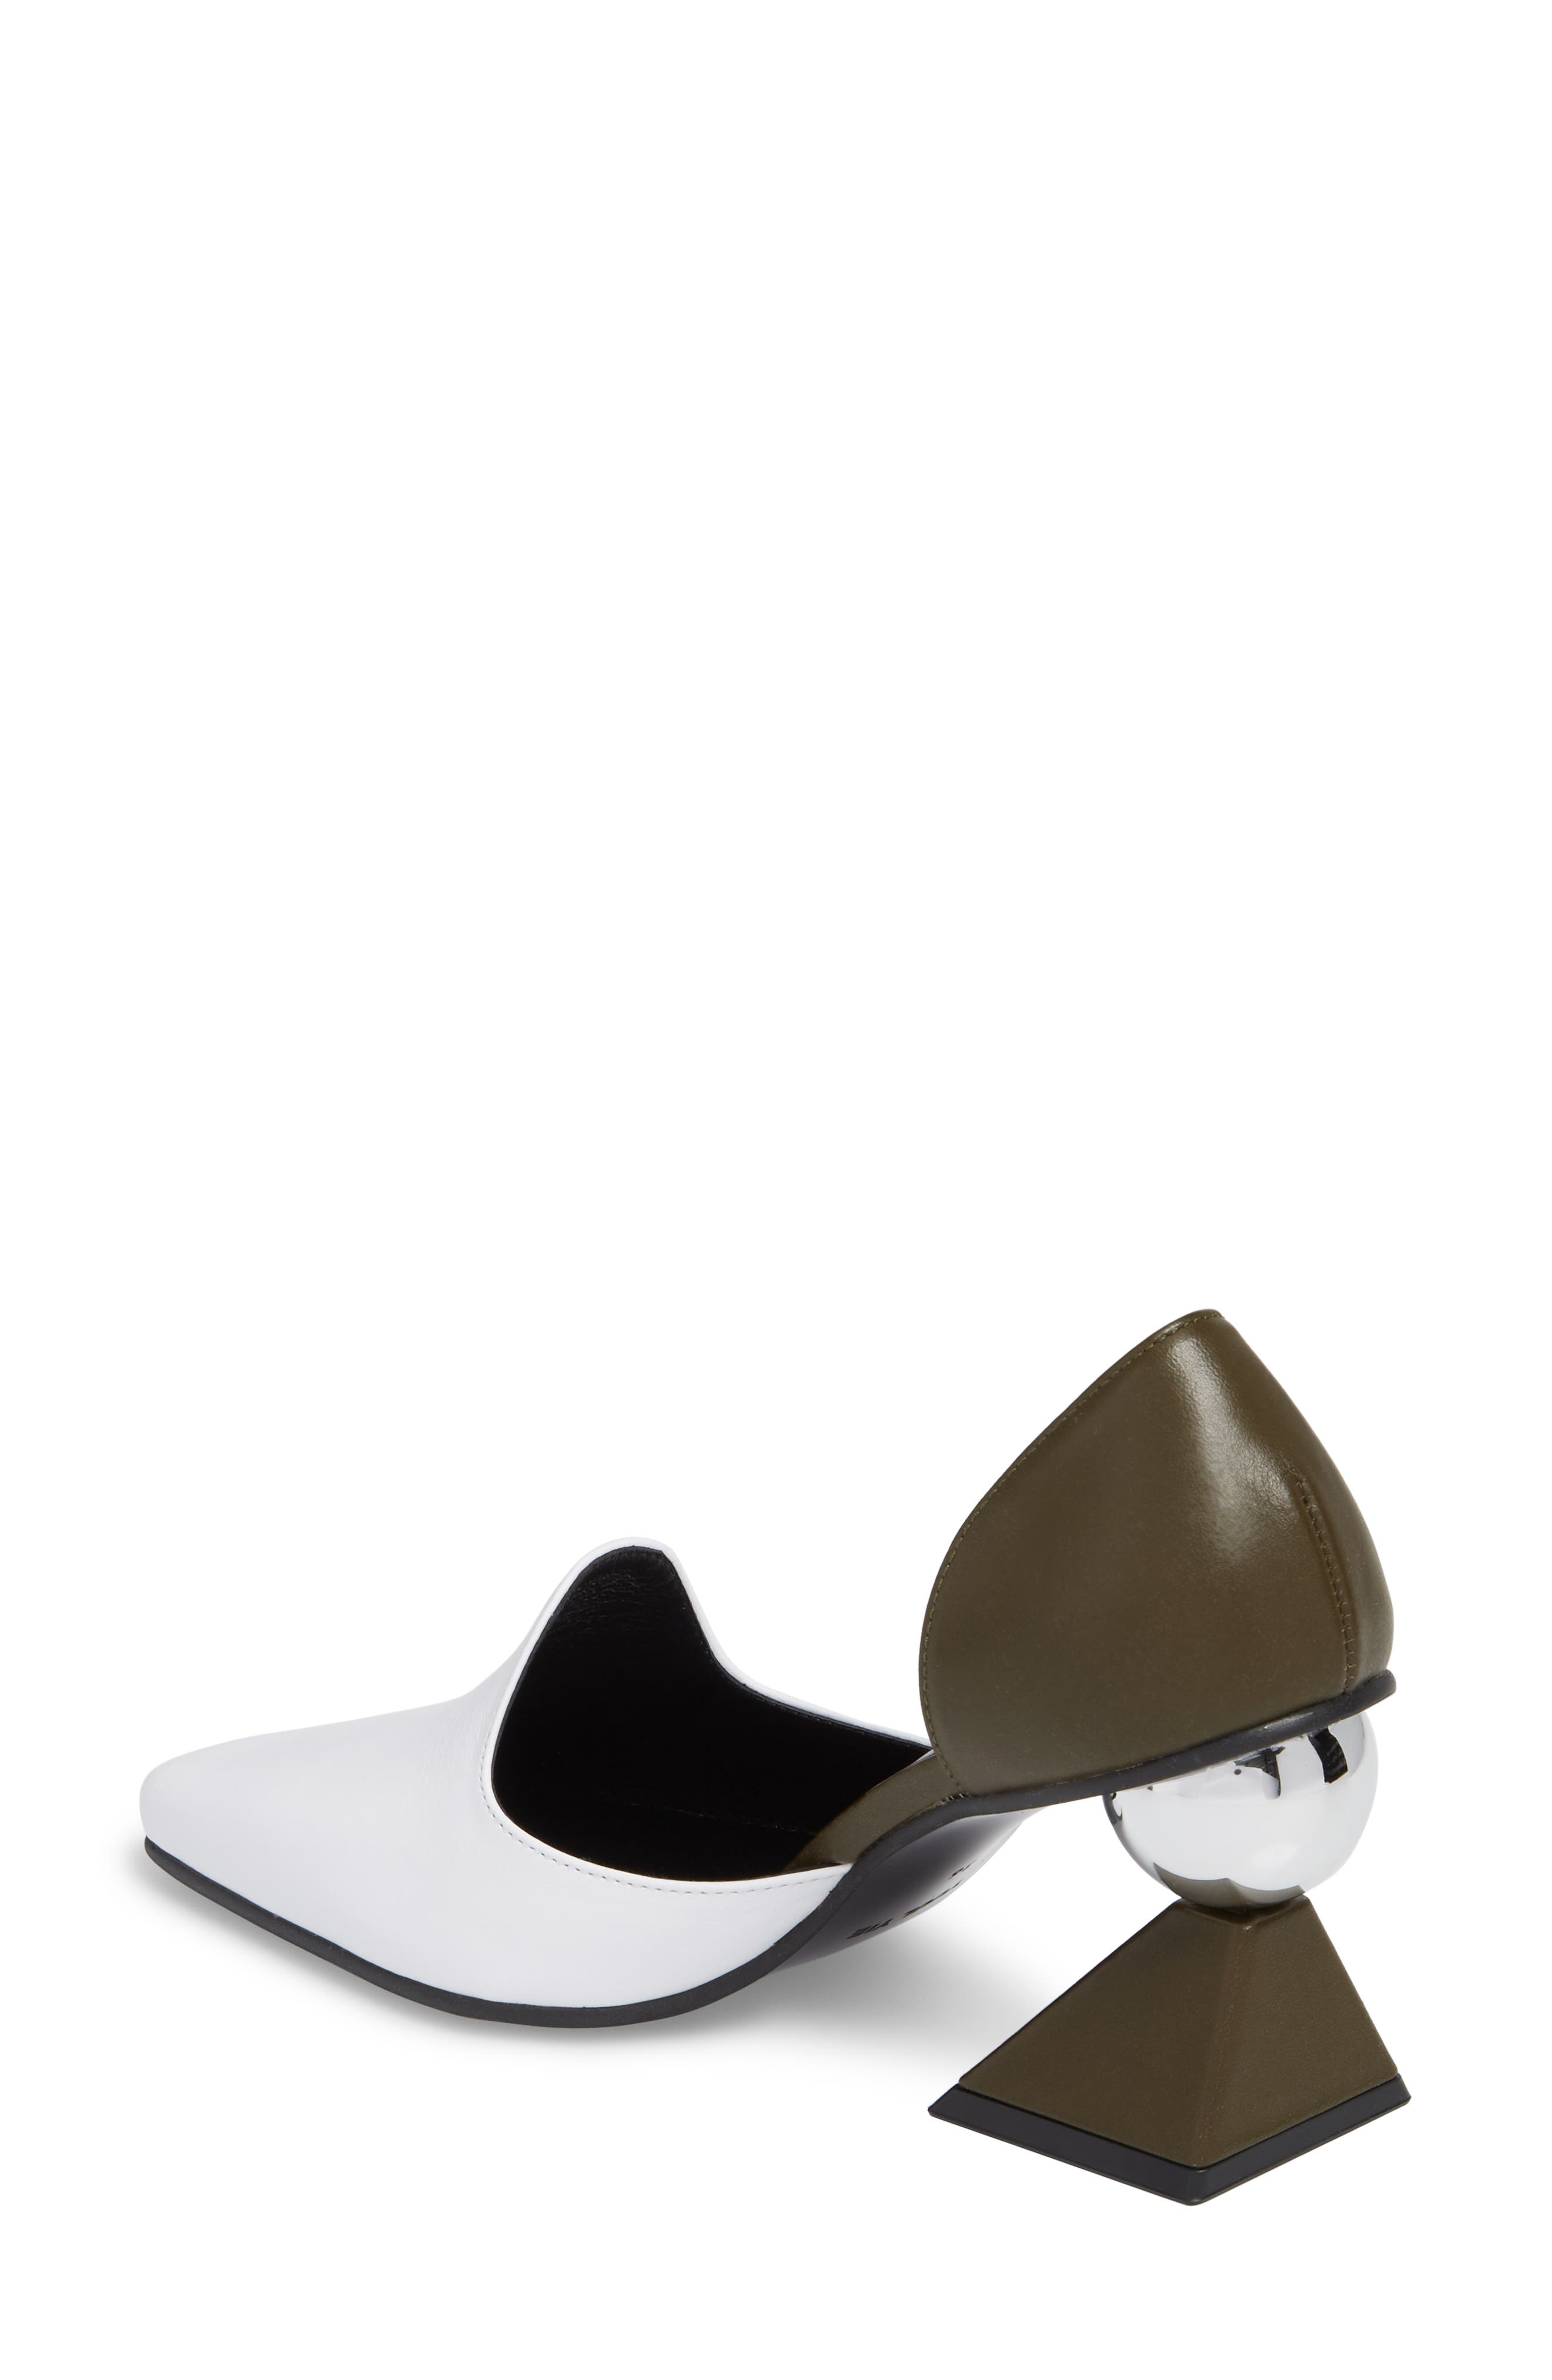 Statement Heel d'Orsay Pump,                             Alternate thumbnail 2, color,                             White/ Olive Green